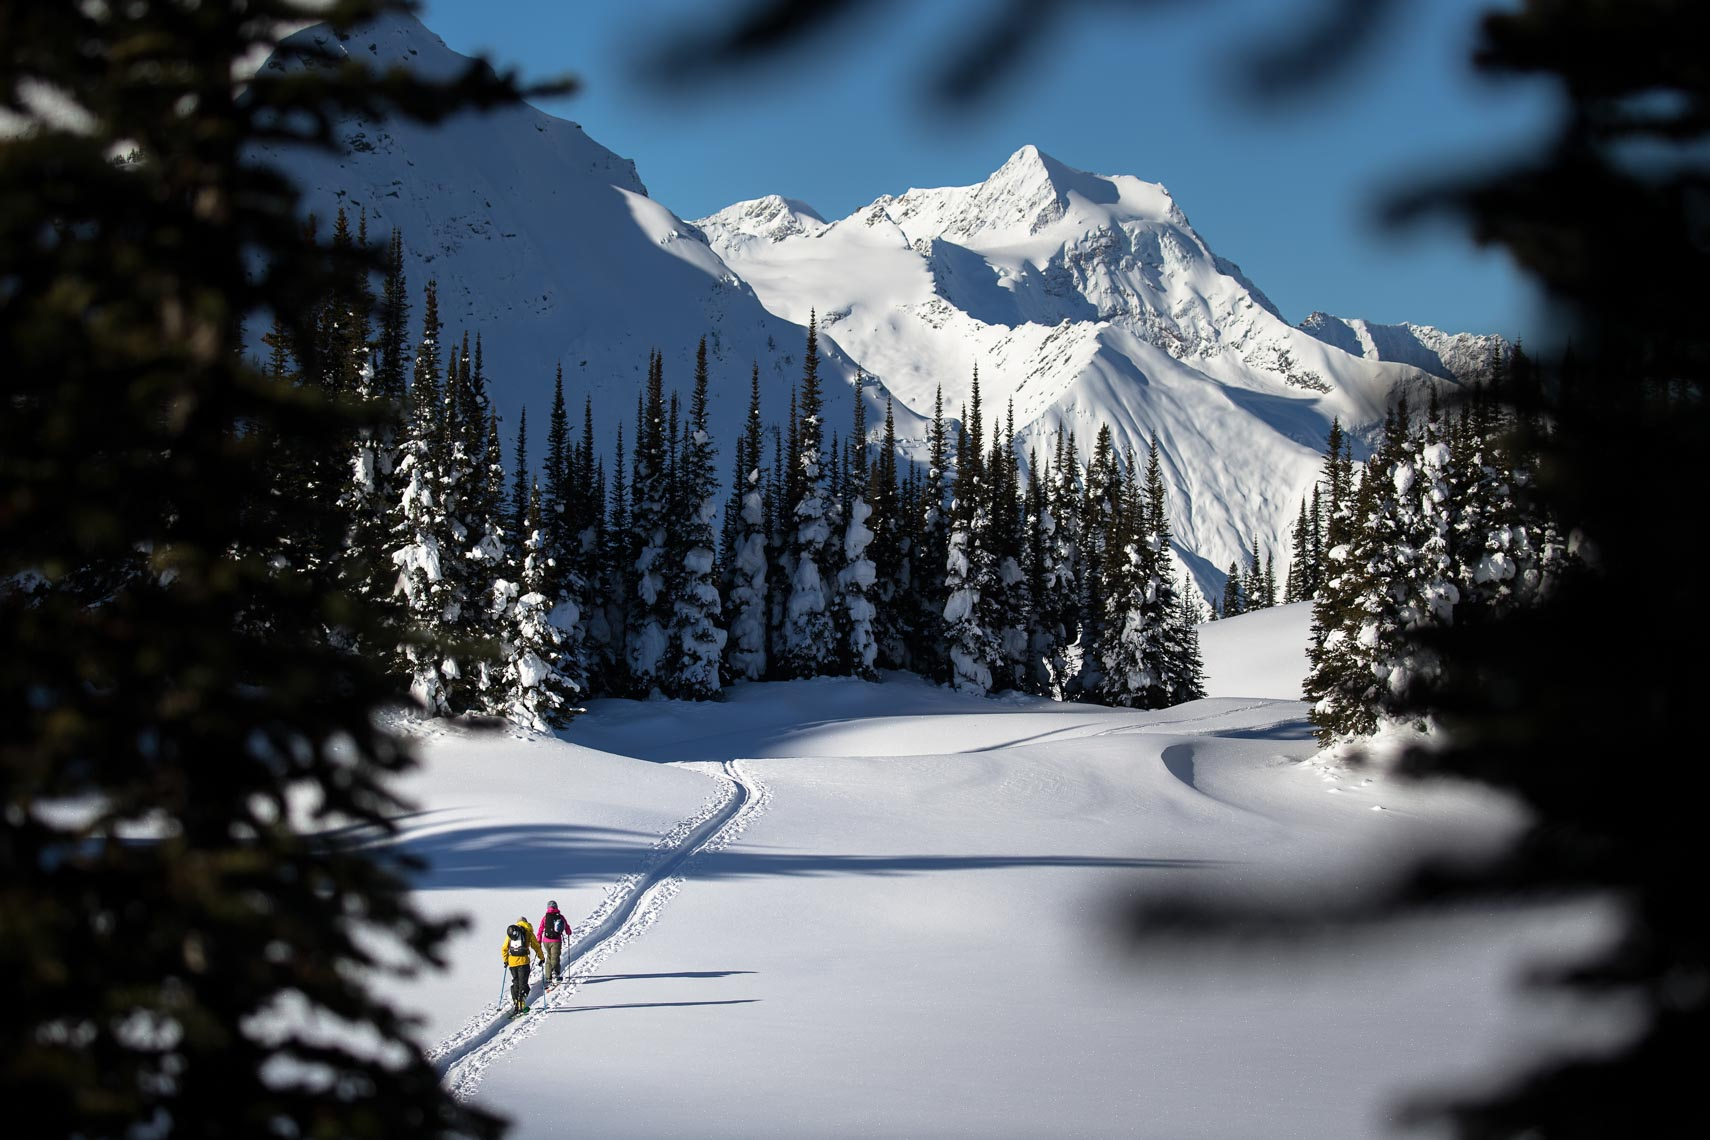 Ski touring in interior BC in the winter